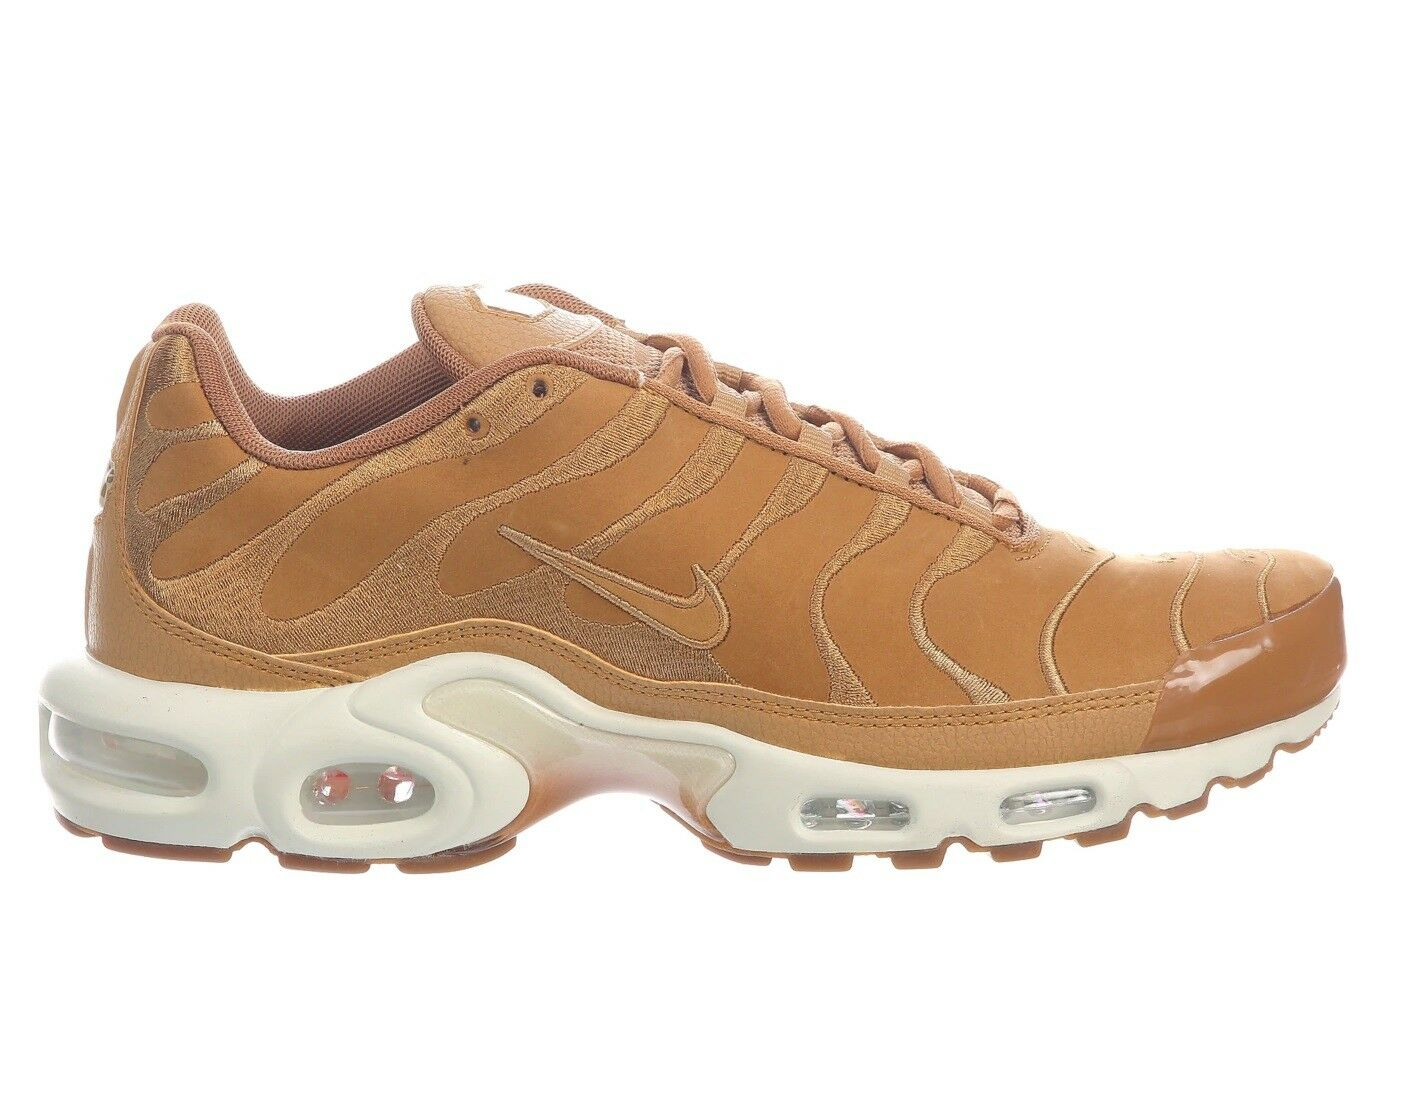 Nike Air Max Plus EF Mens AH9697-2018 Flax Sail Suede Running Shoes Comfortable Brand discount